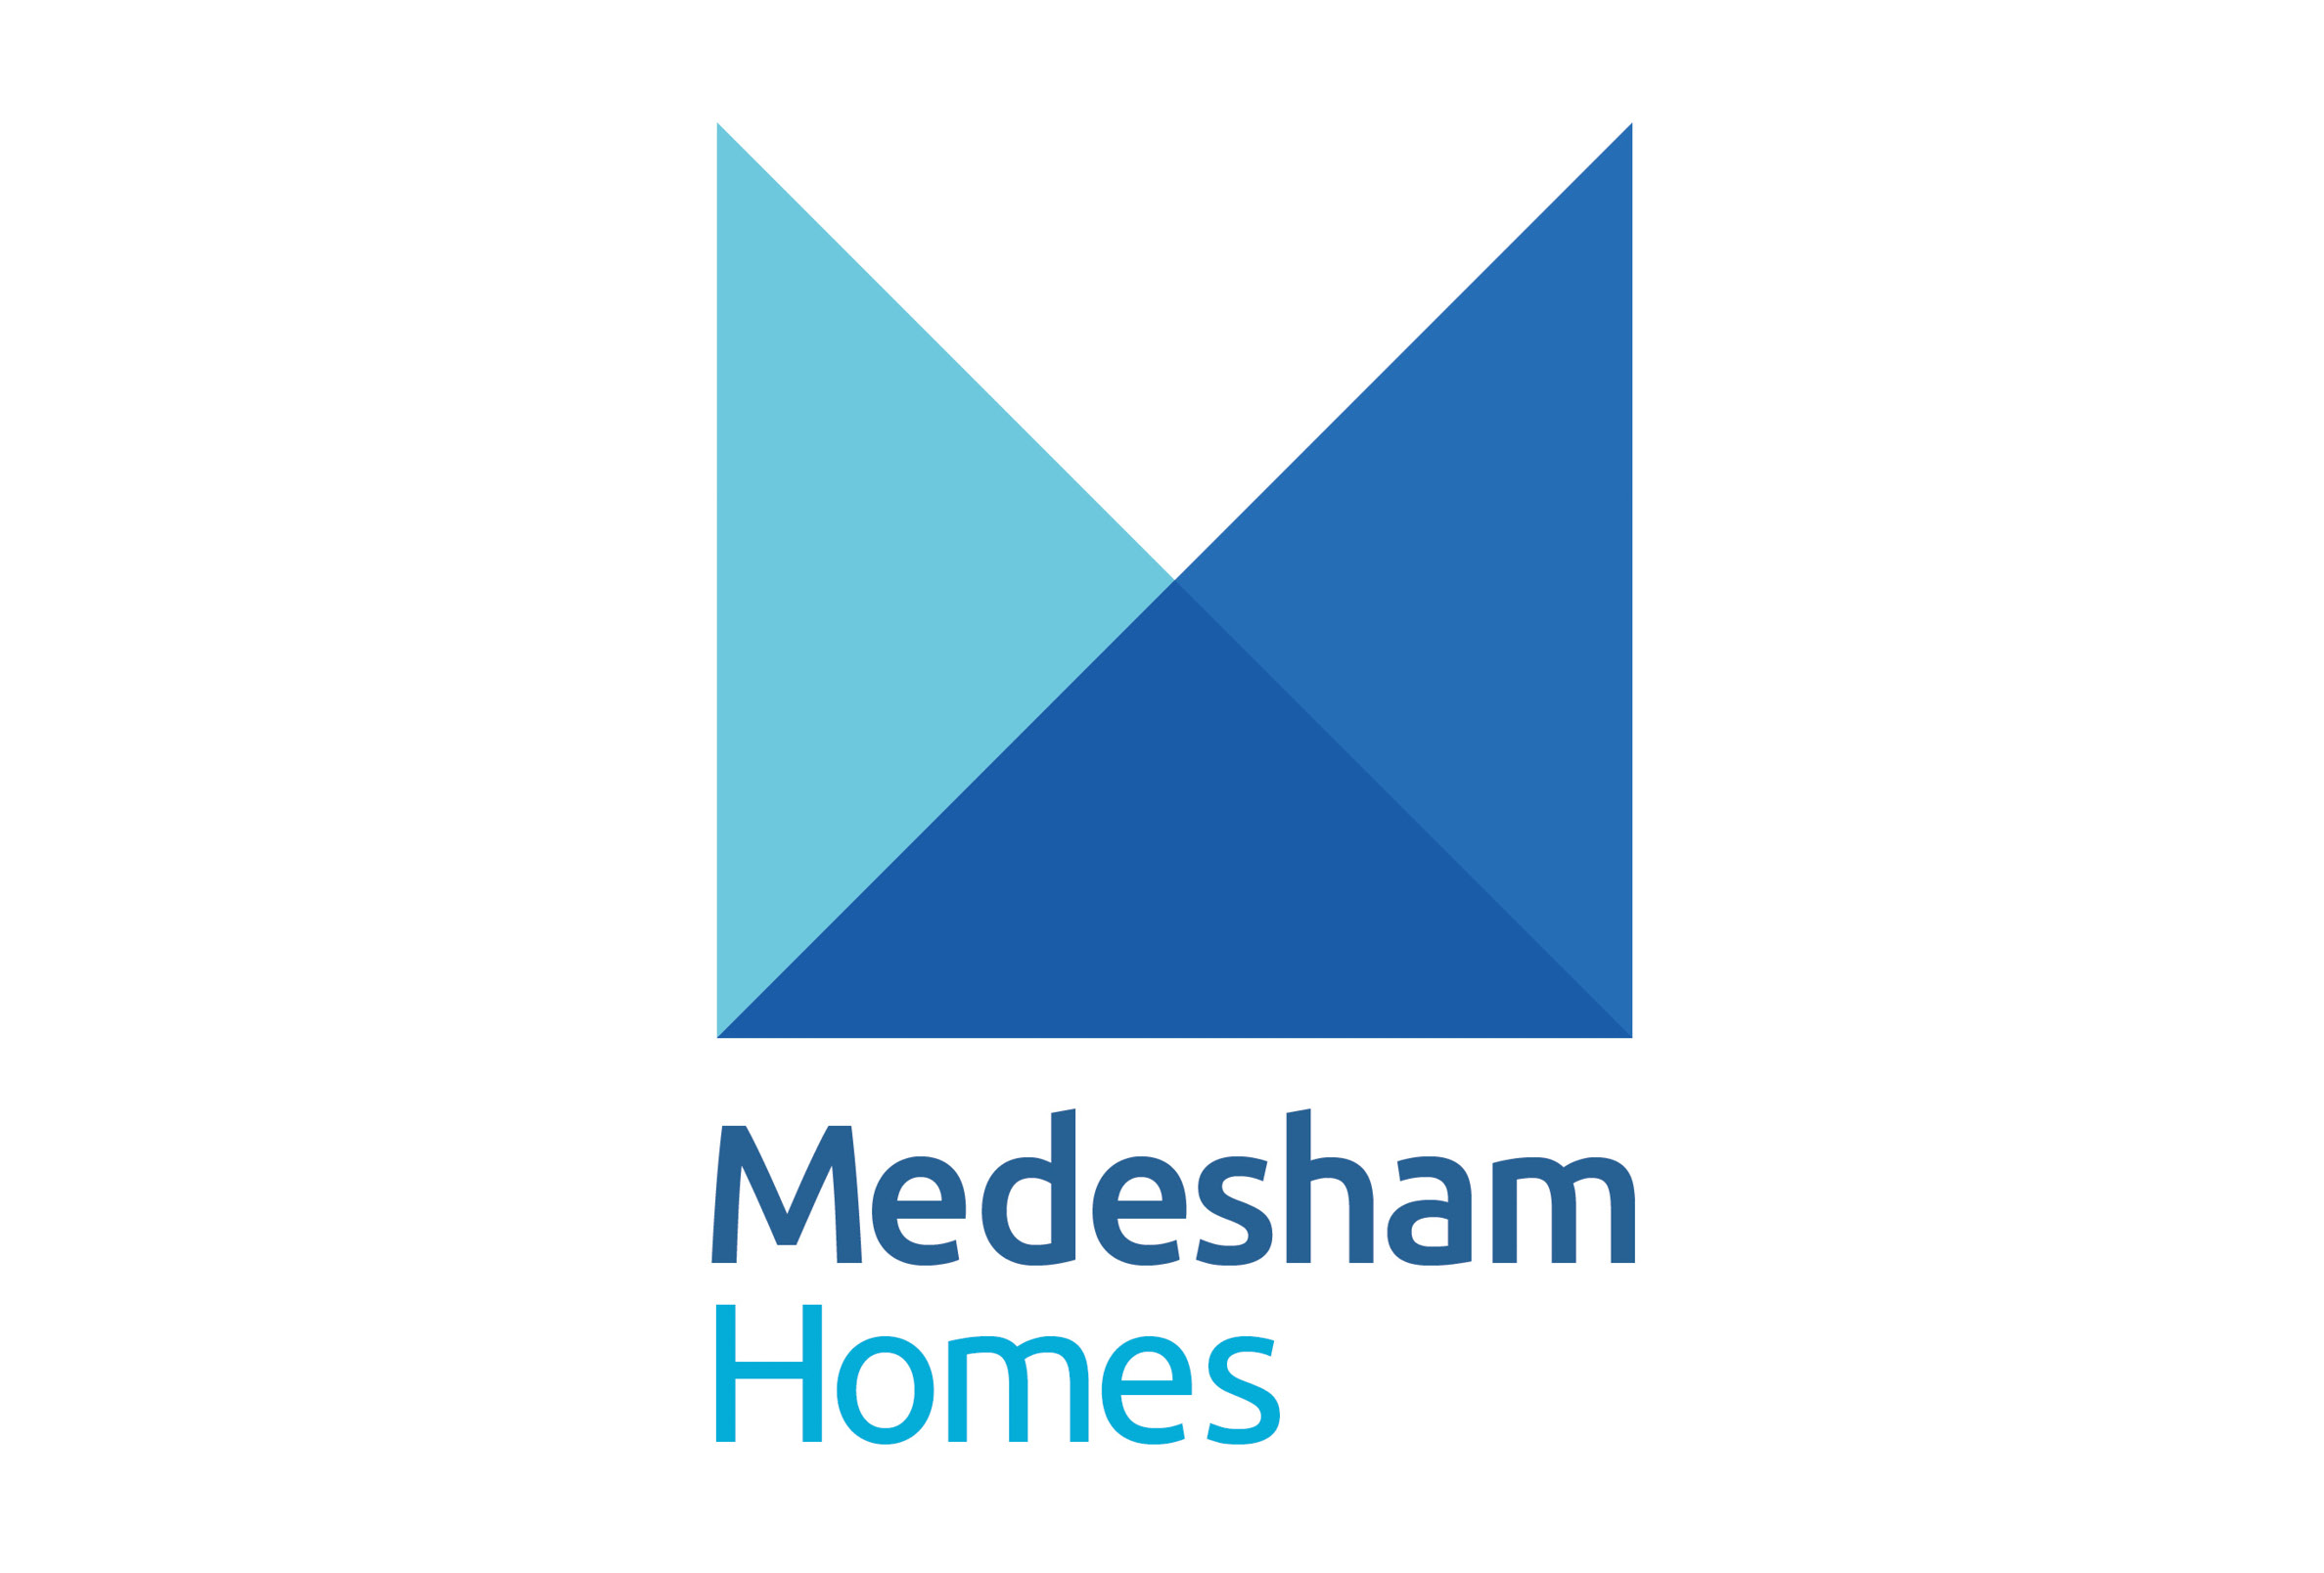 Medesham Homes delivers first new homes in time for Christmas